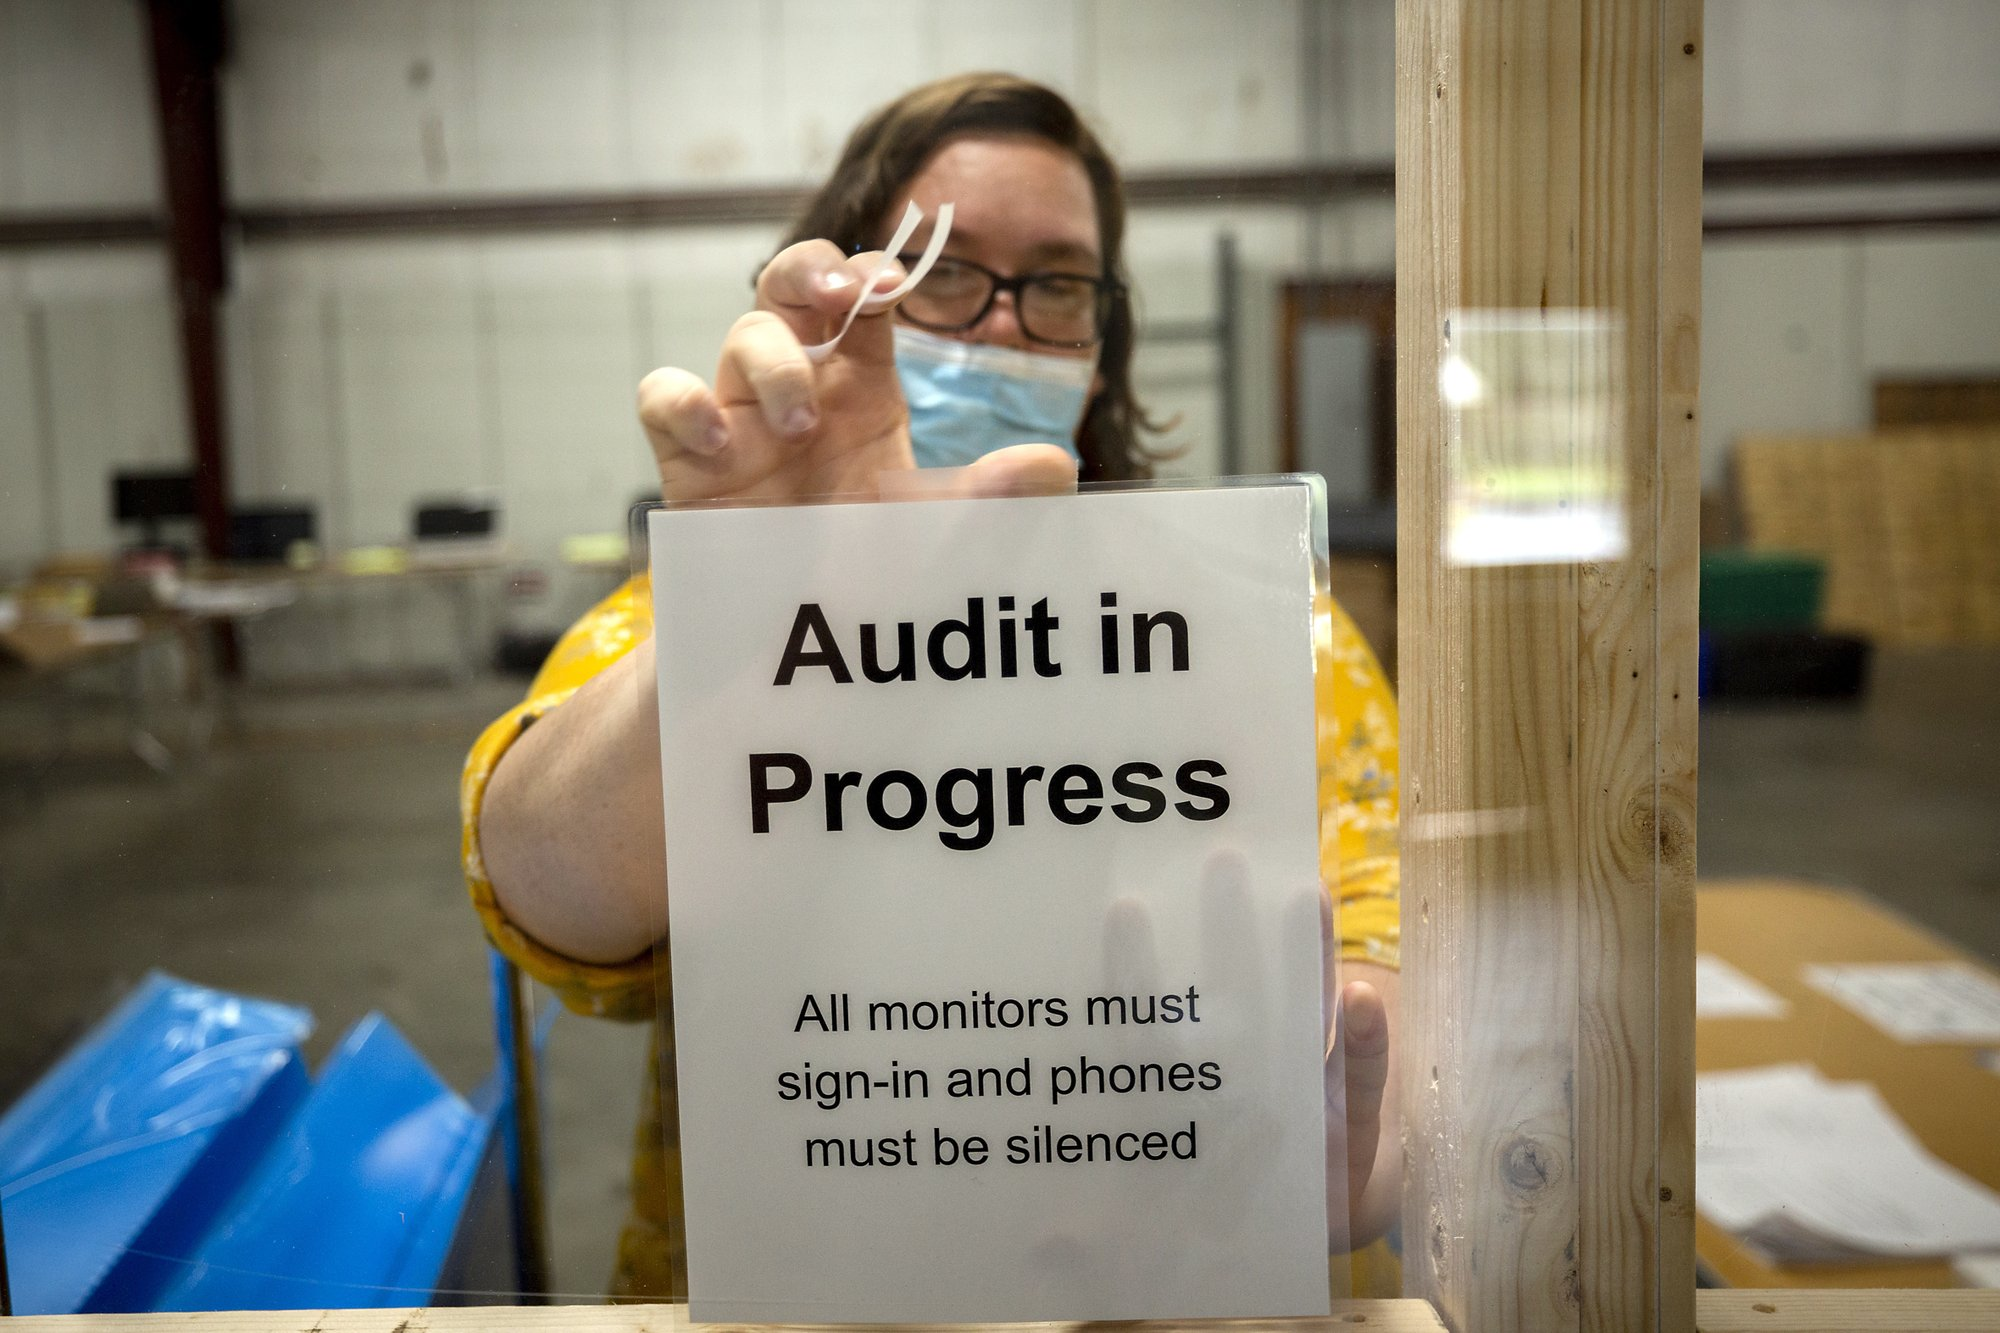 Breaking: Three More States ALONG WITH AZ, PA, GA To Hold Full Forensic Audits